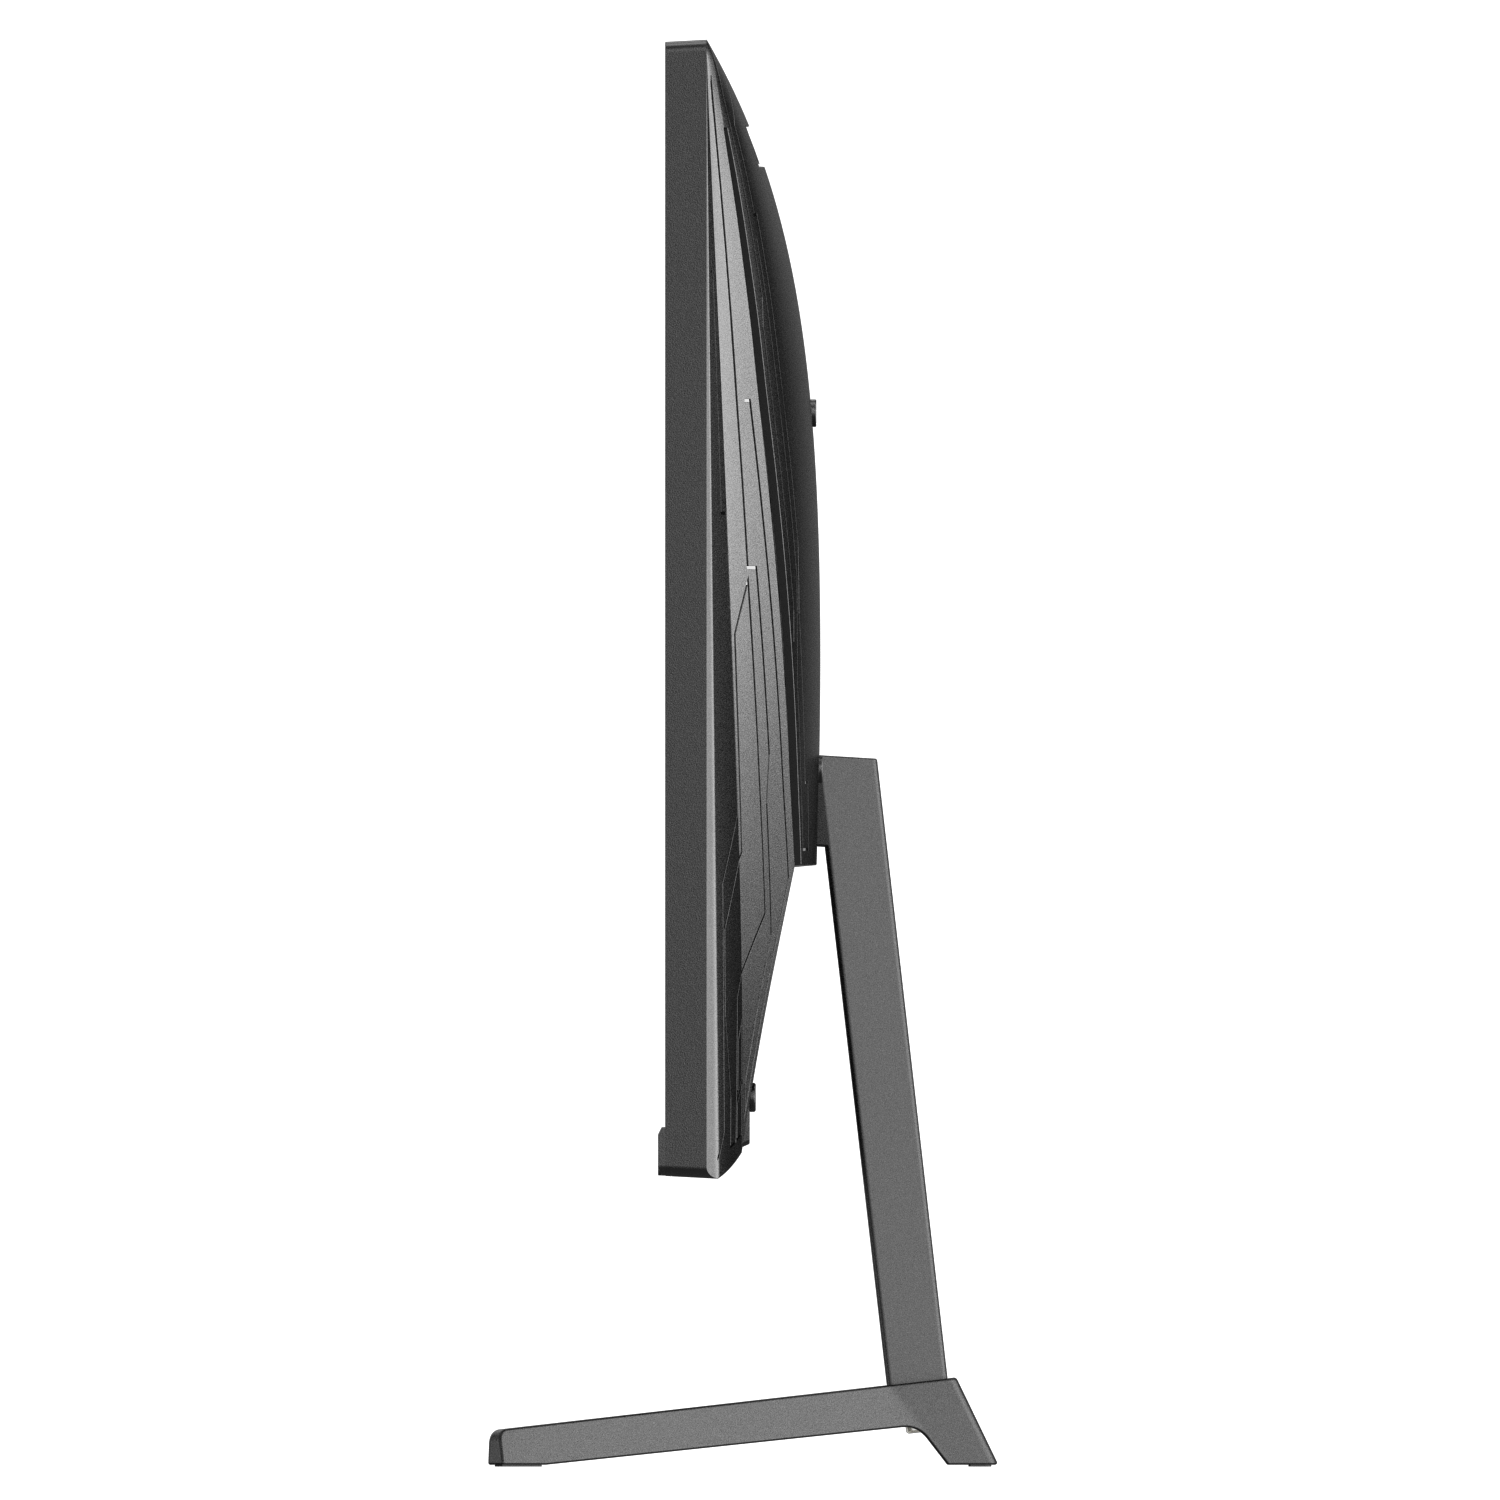 PX248 Prime Gaming Monitor